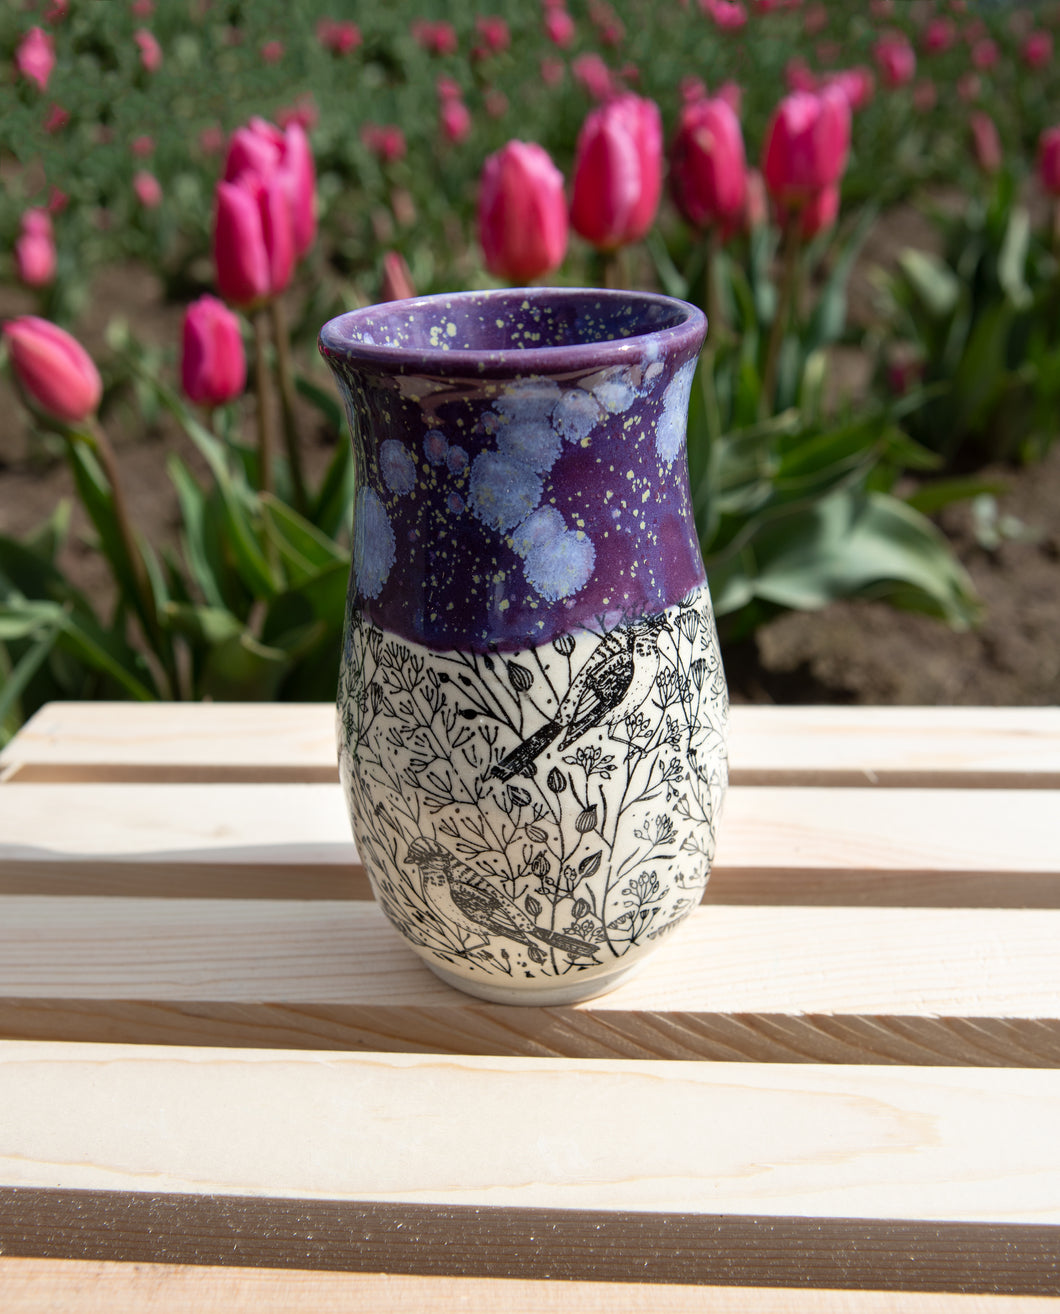 Purple Speckled Bird Foliage Vase